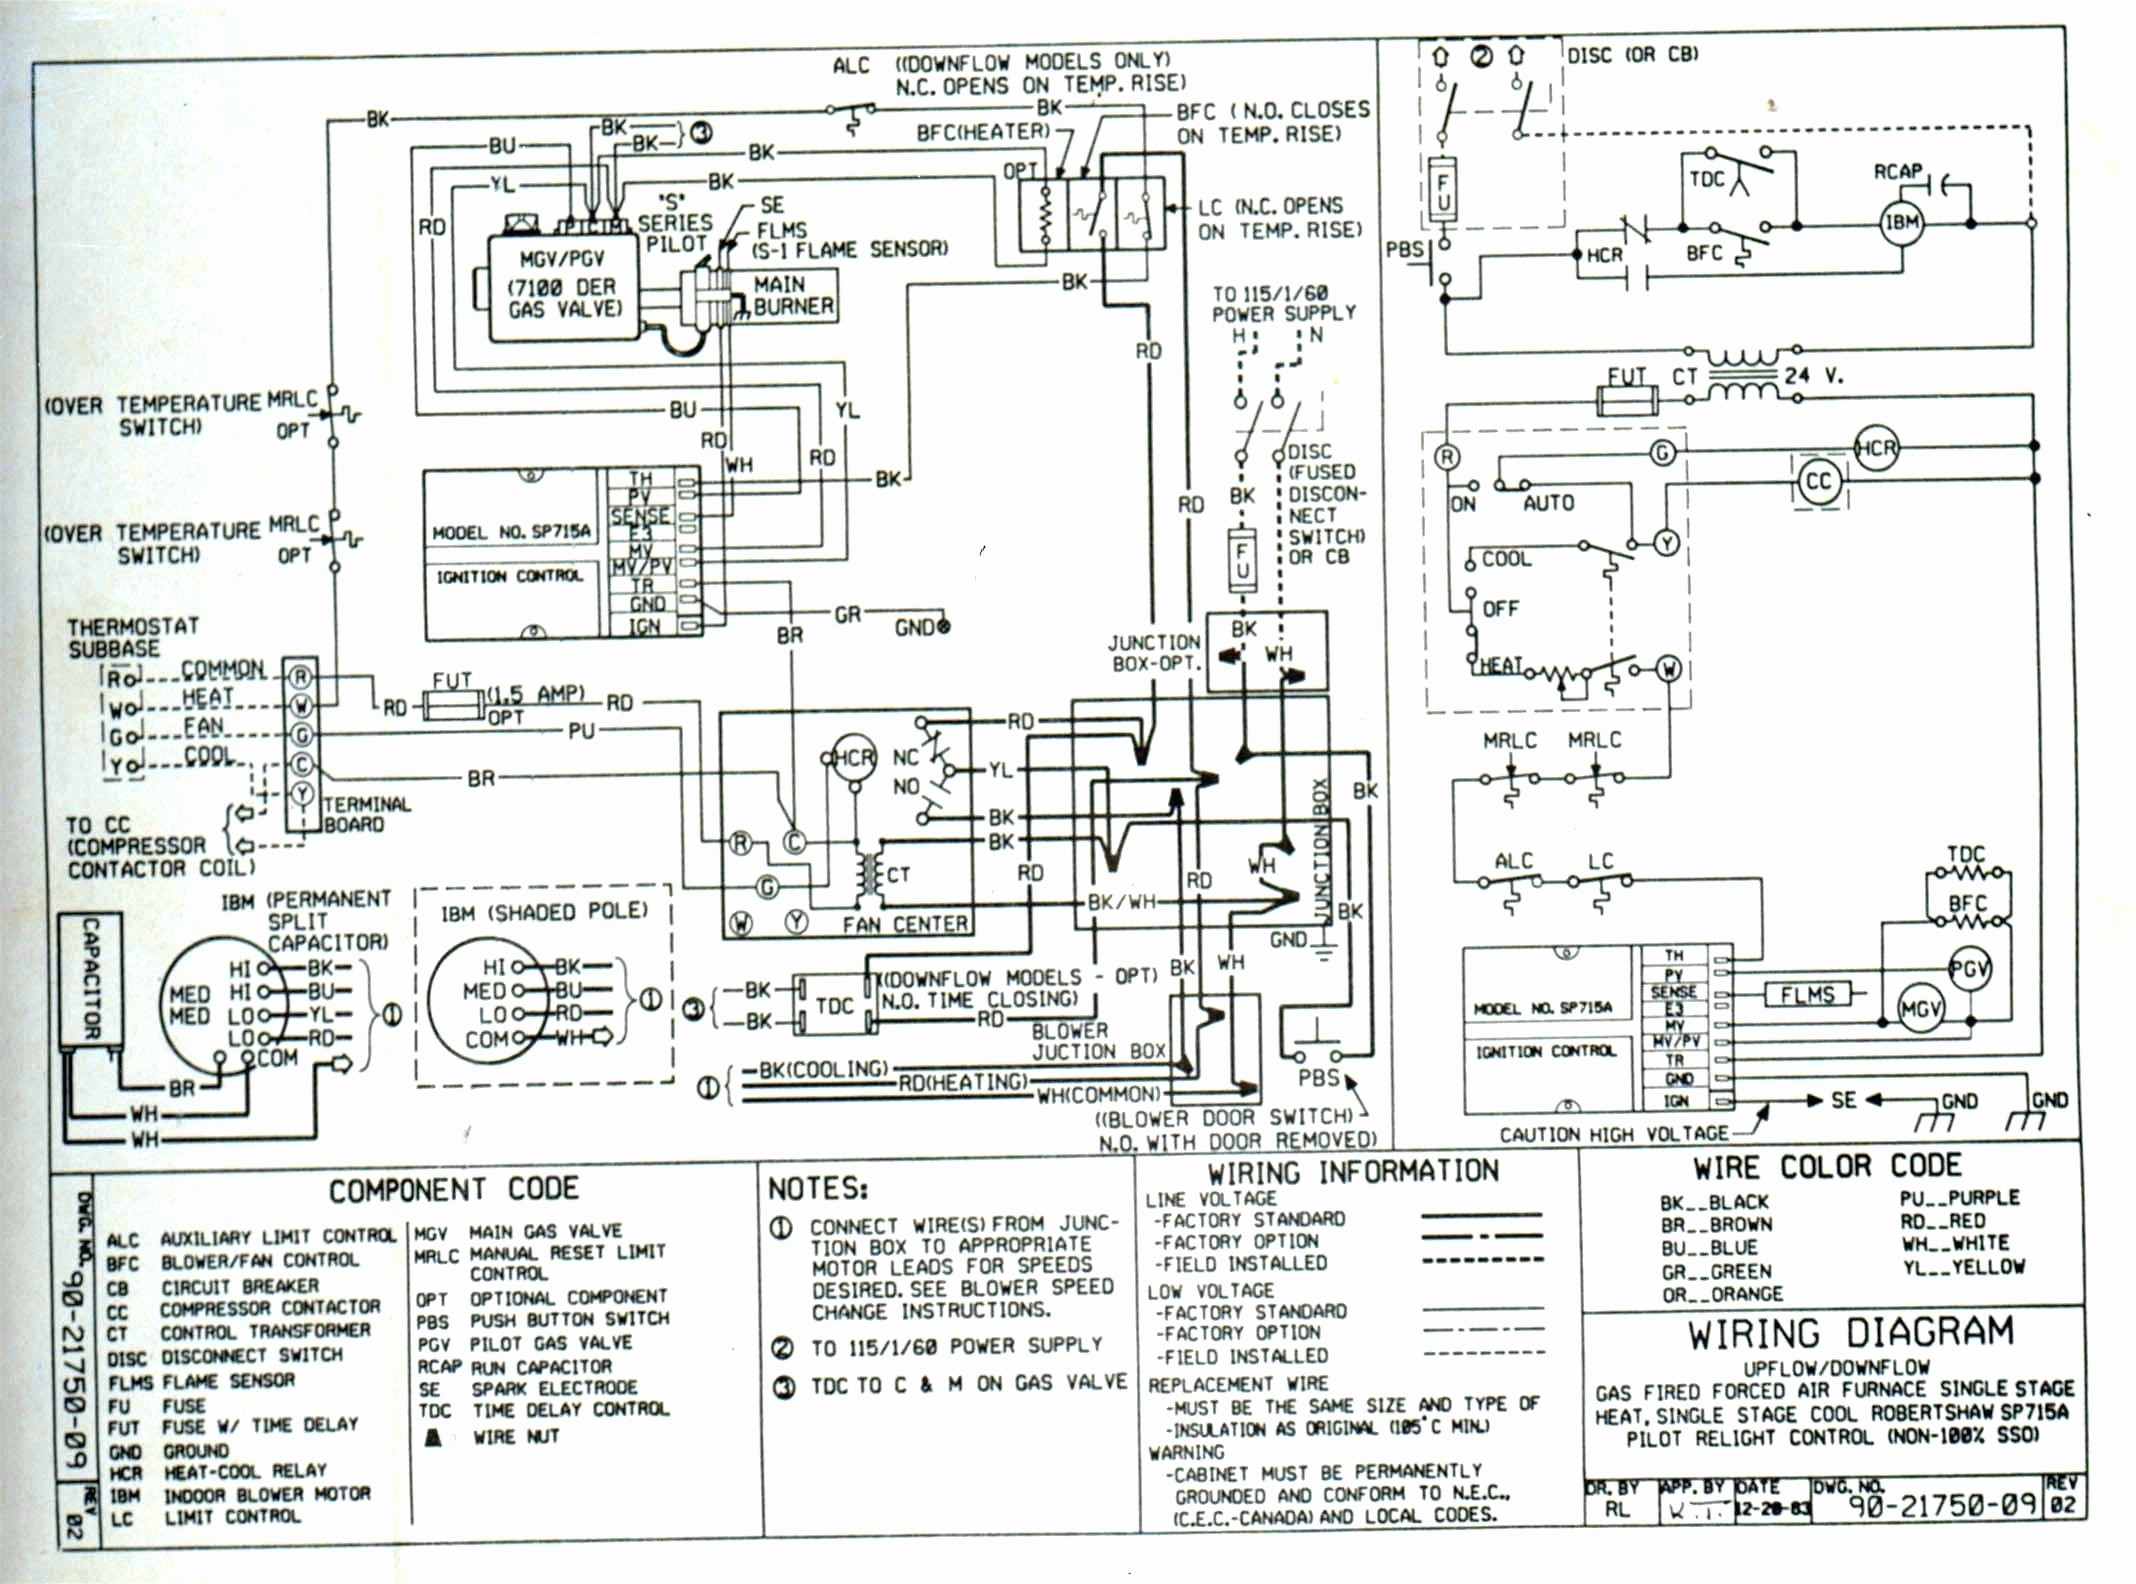 Suzuki Sidekick Engine Diagram C9b Robbins Amp Myers Electric Motor Wiring Diagram Of Suzuki Sidekick Engine Diagram